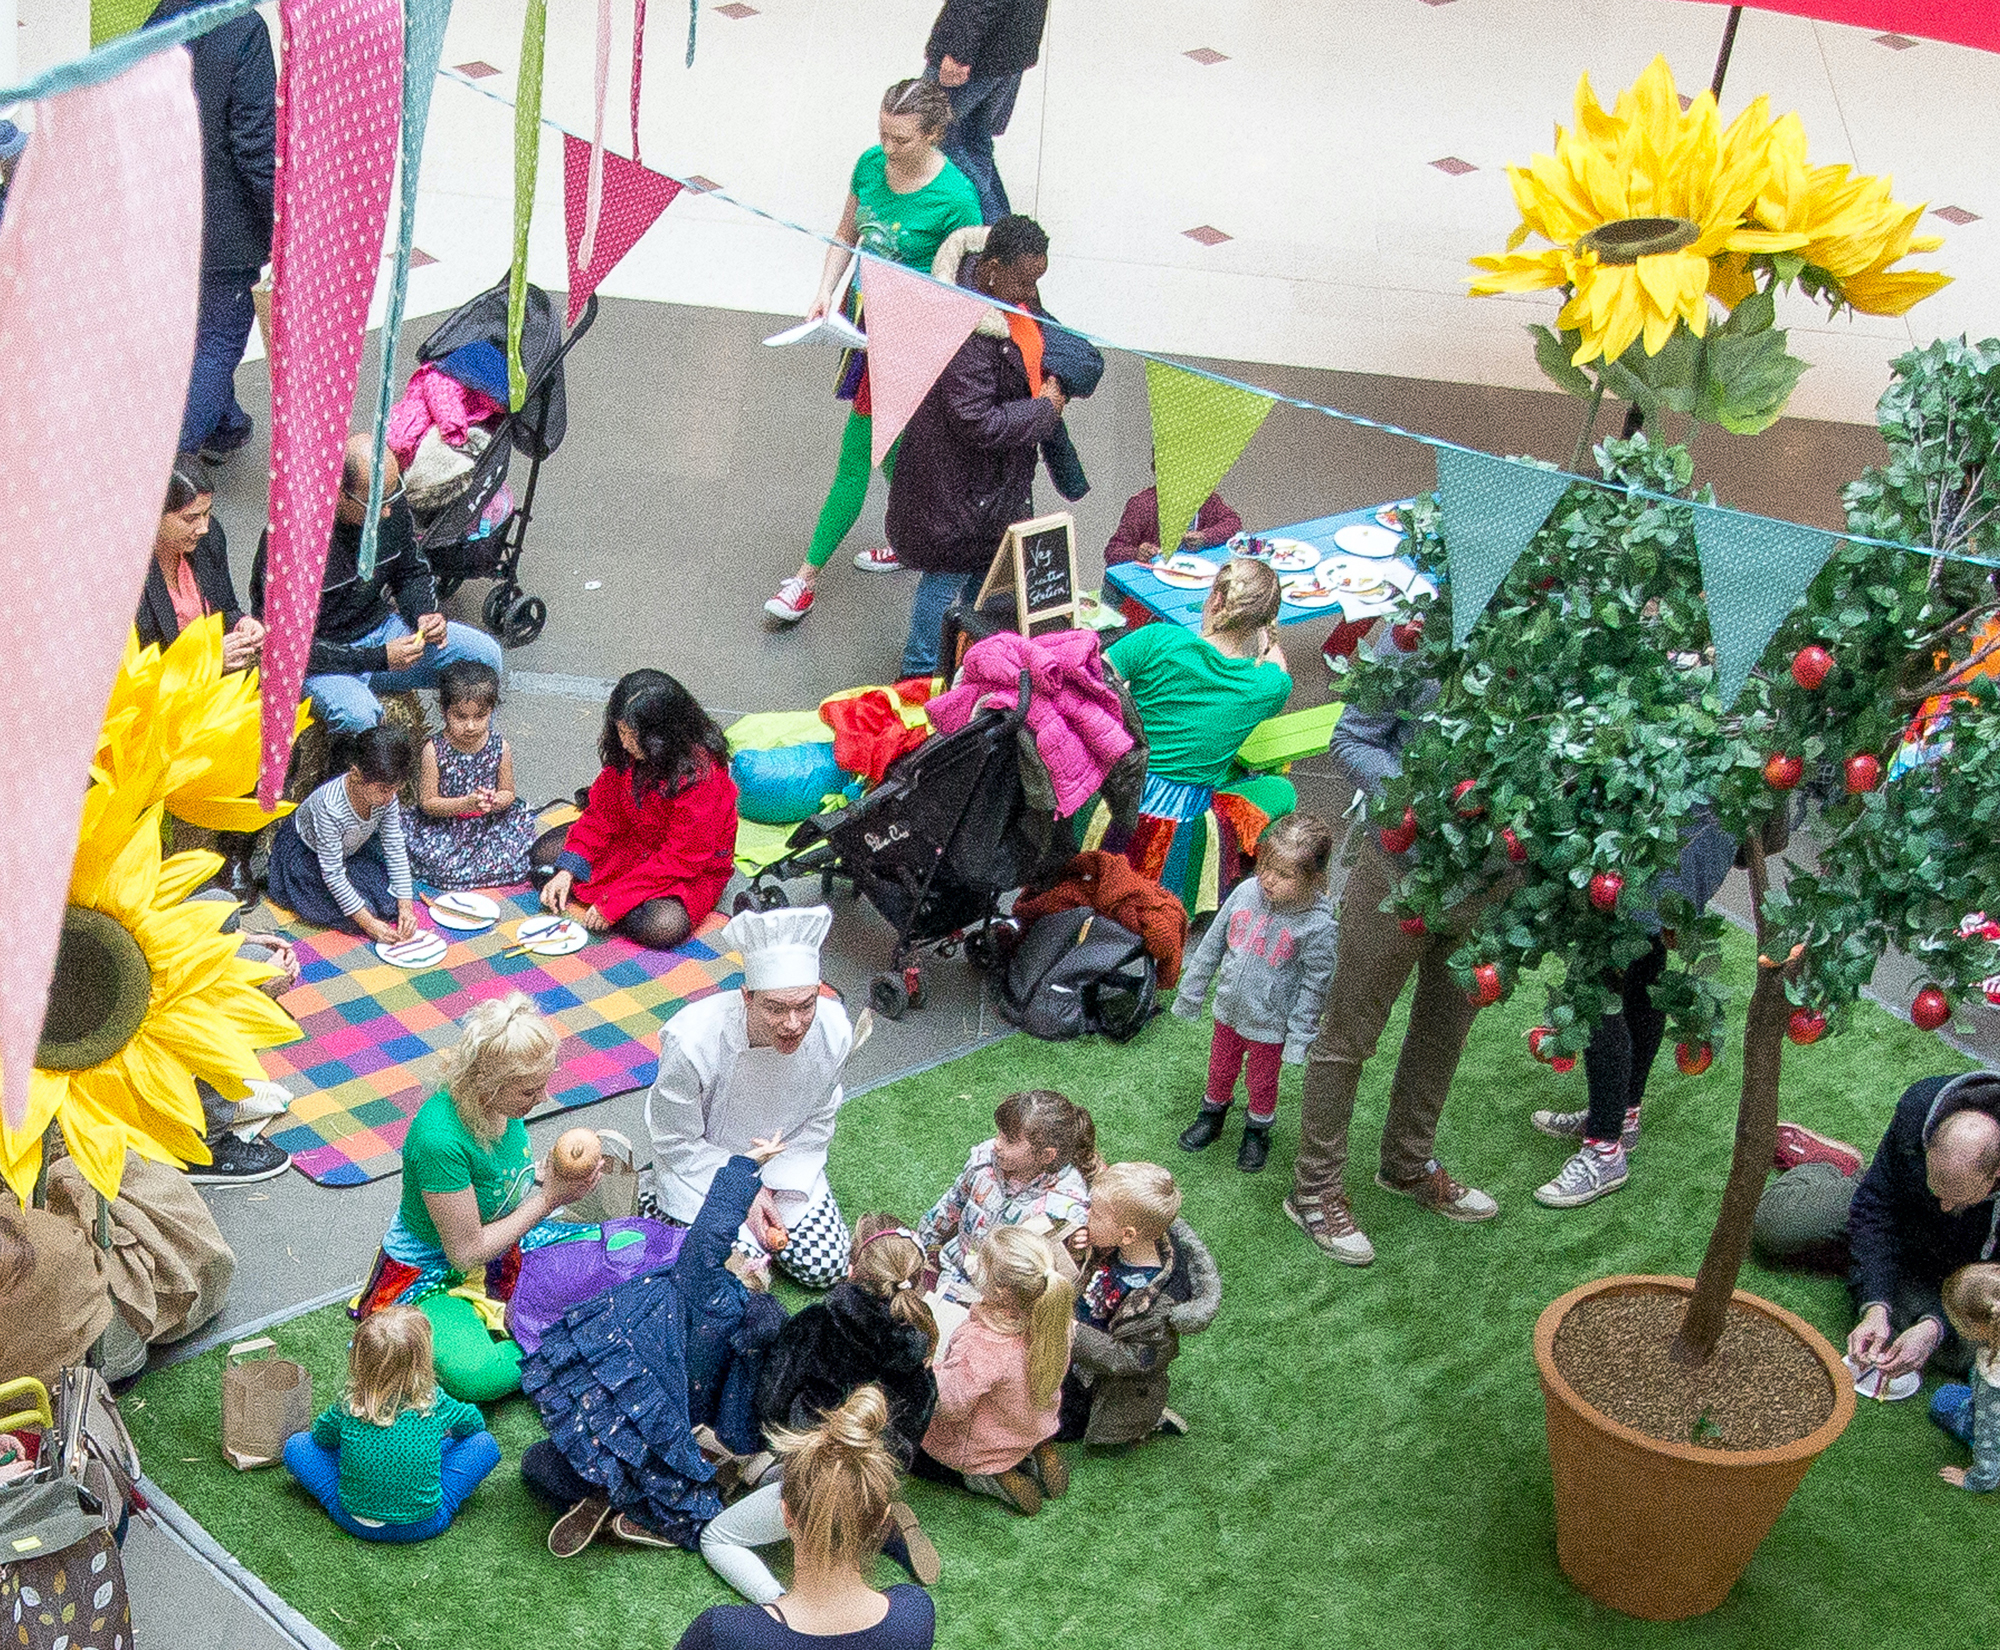 kidspeople childrens events shopping centres